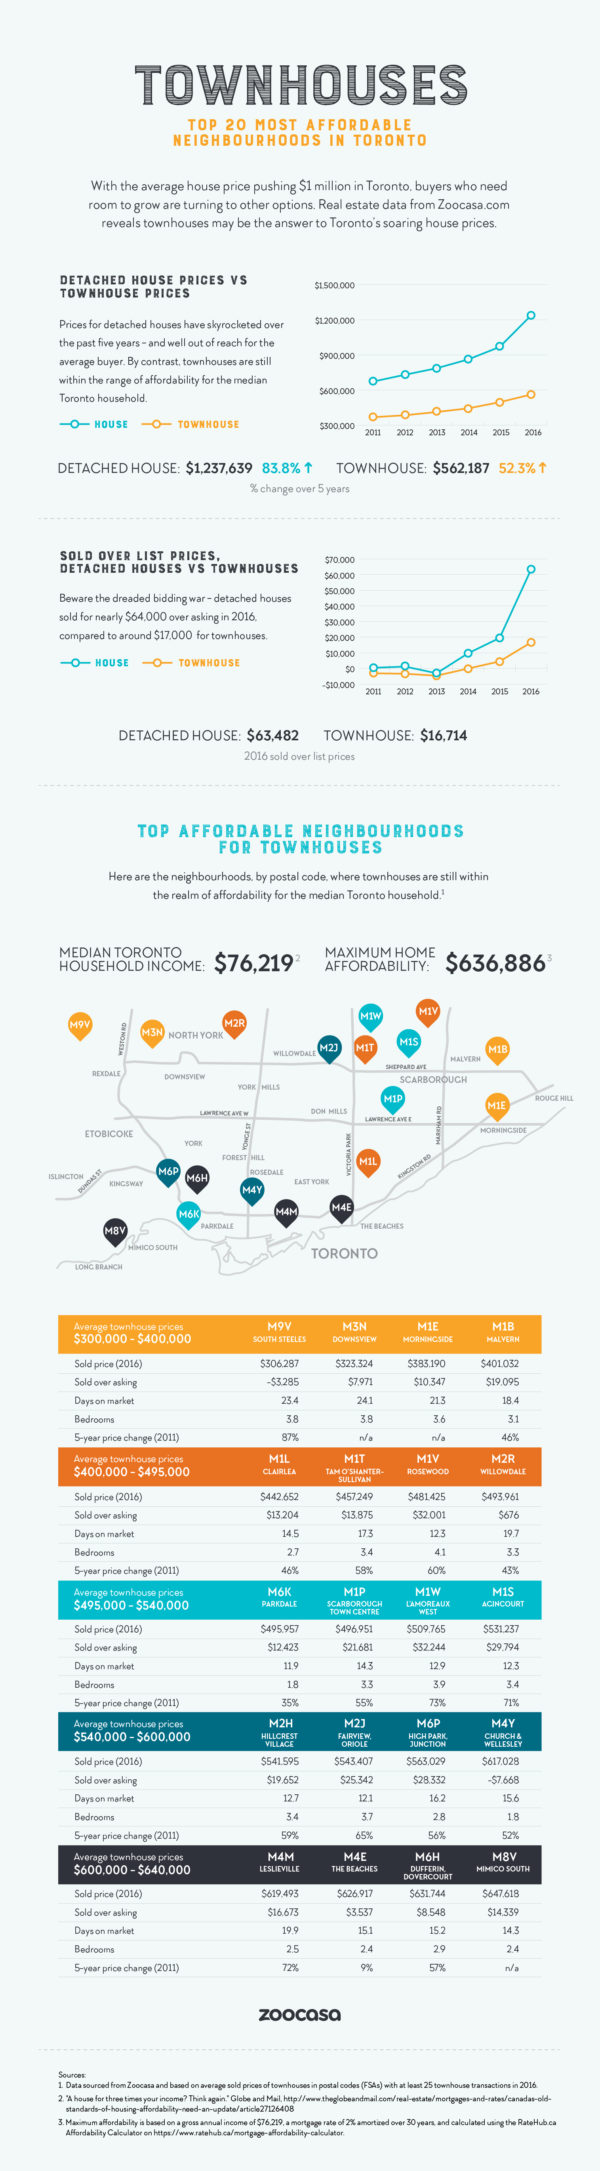 Townhouses: The top 20 affordable neighbourhoods in Toronto